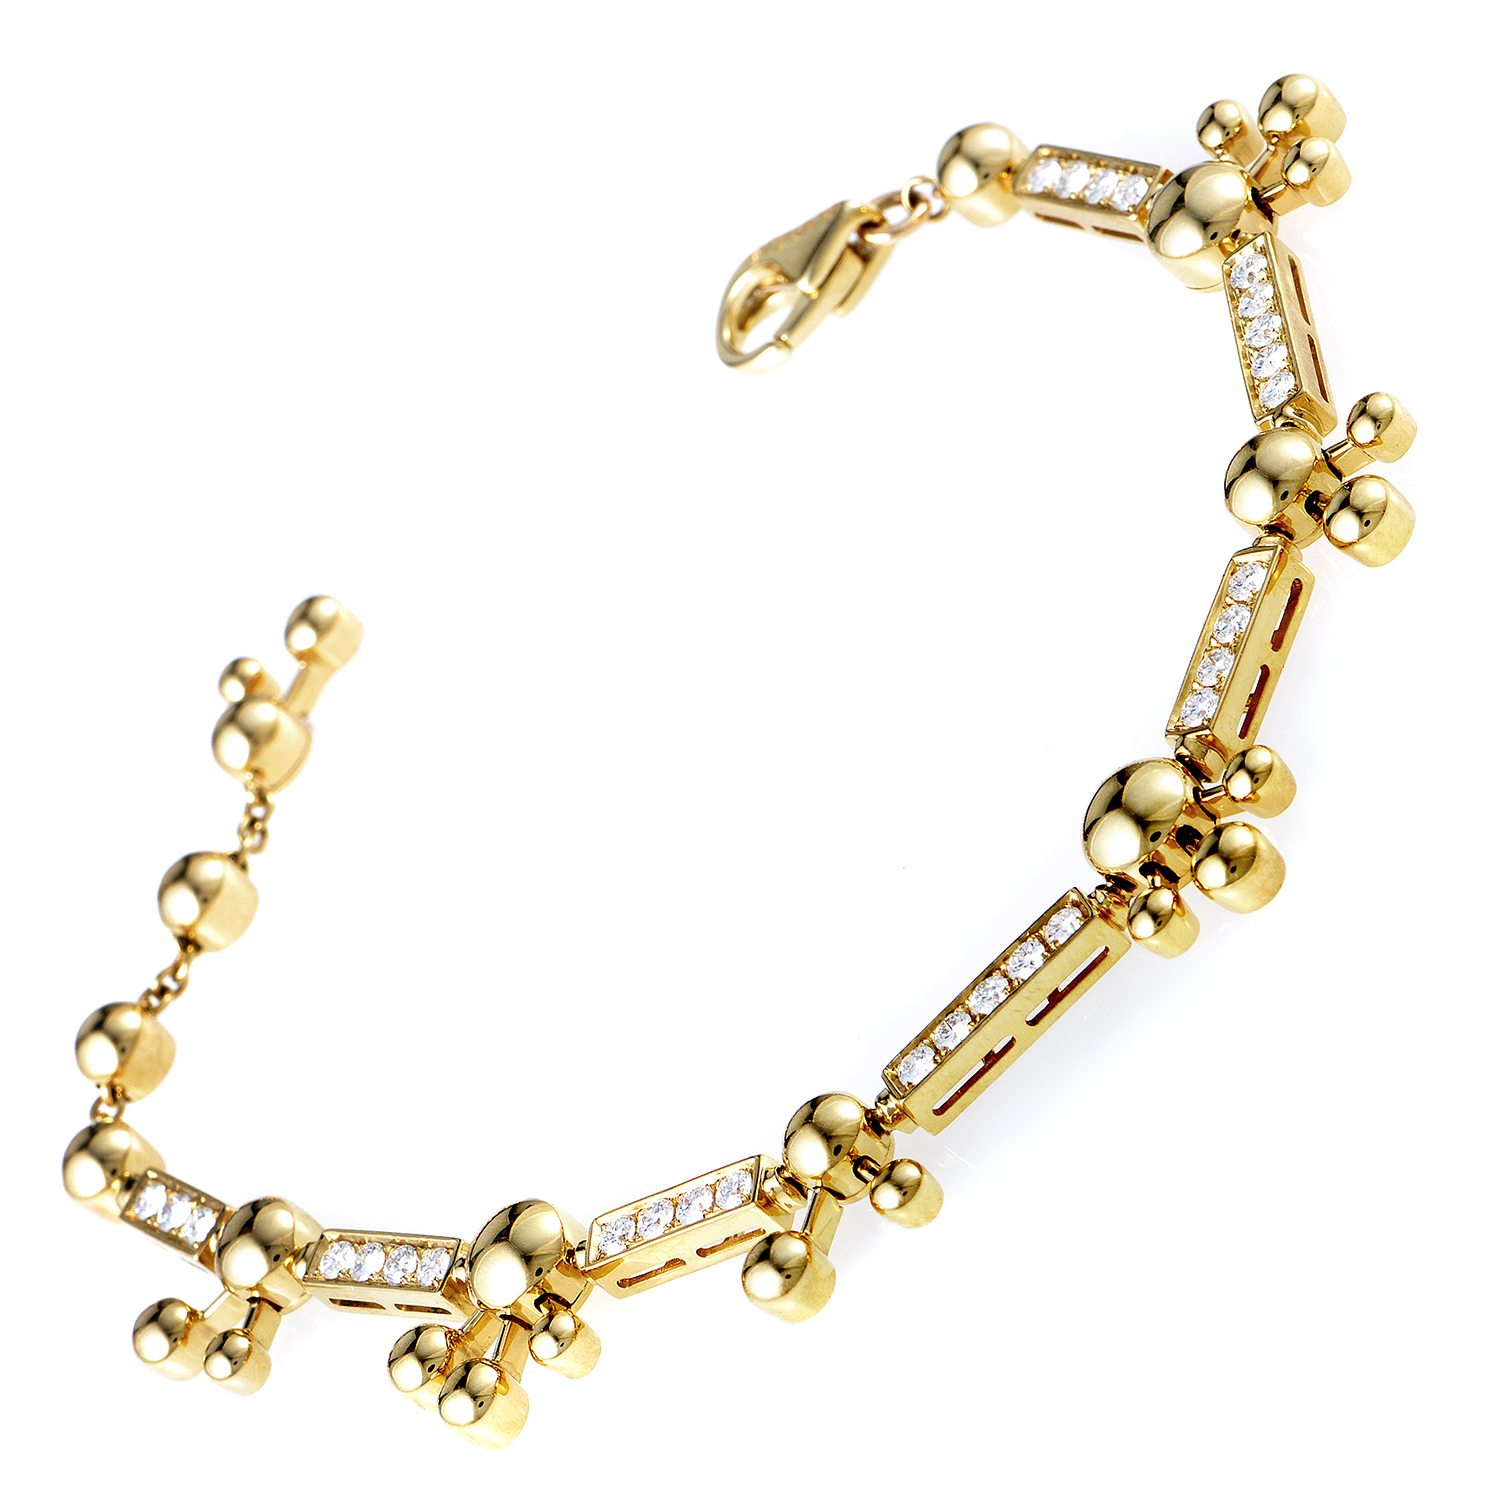 Bvlgari 18K Yellow Gold Diamond Bracelet 27871202